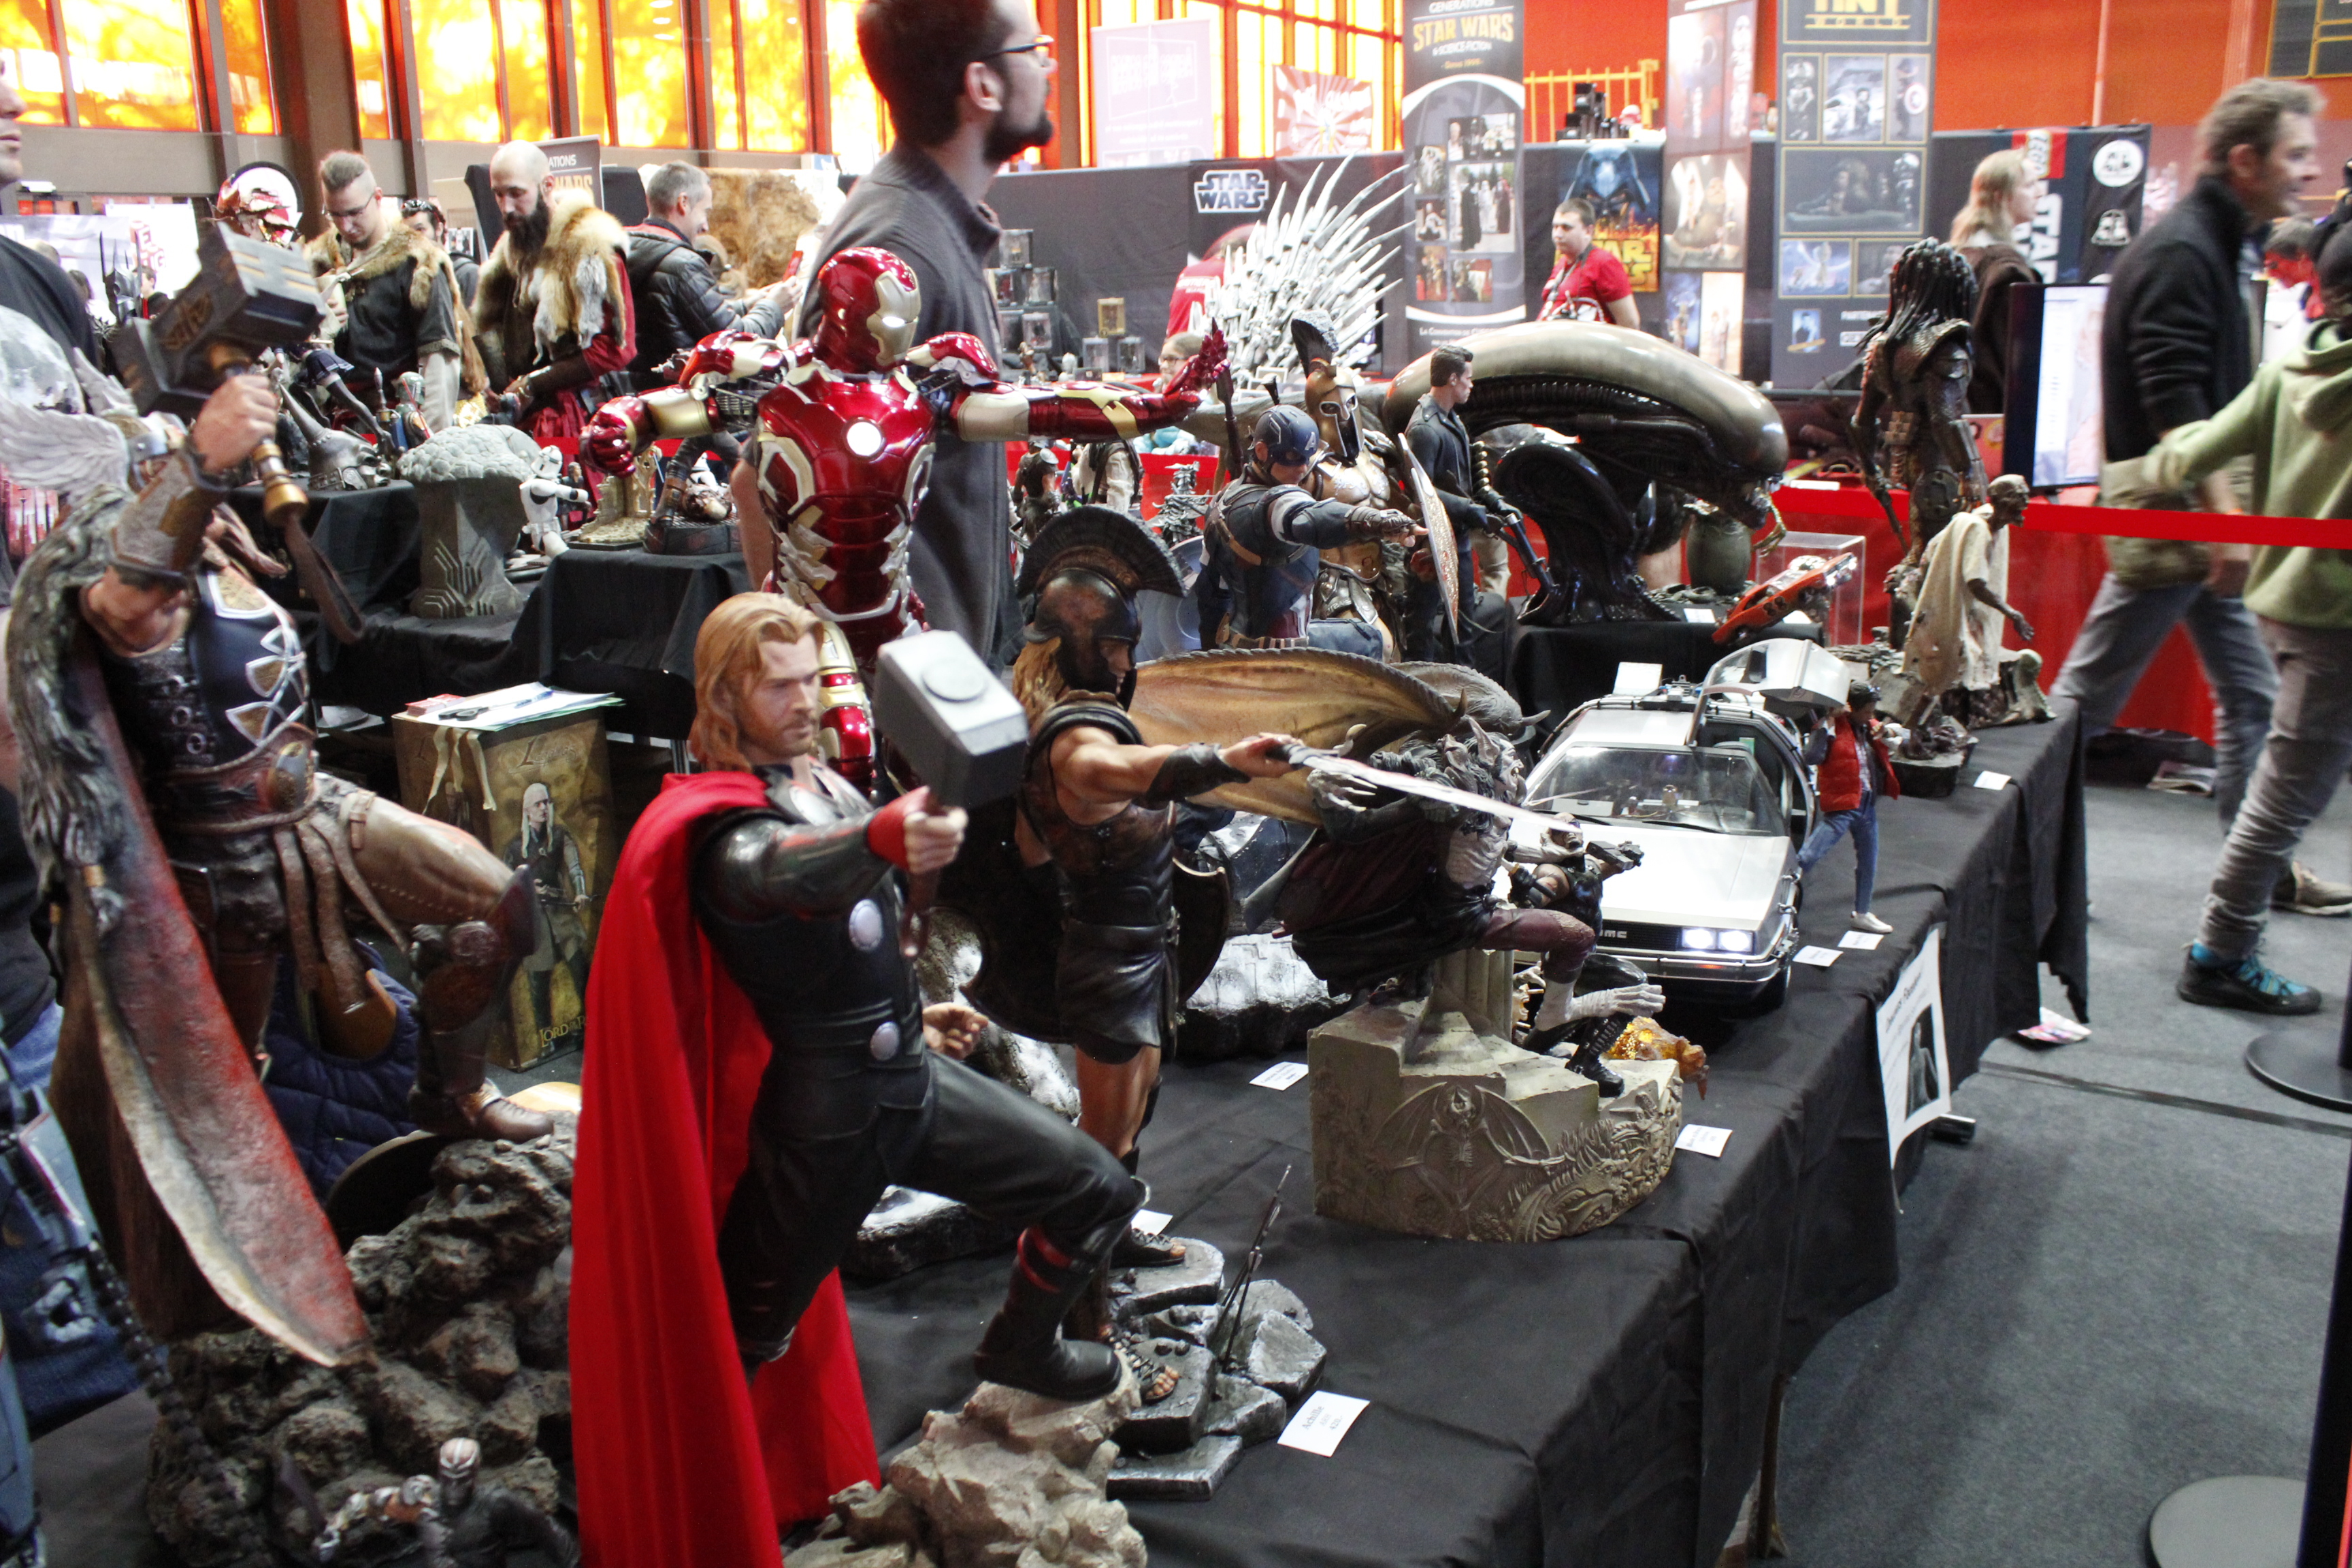 Swiss Fantasy Show - Morges 22/23 octobre 2016 - Page 4 993712MG3466